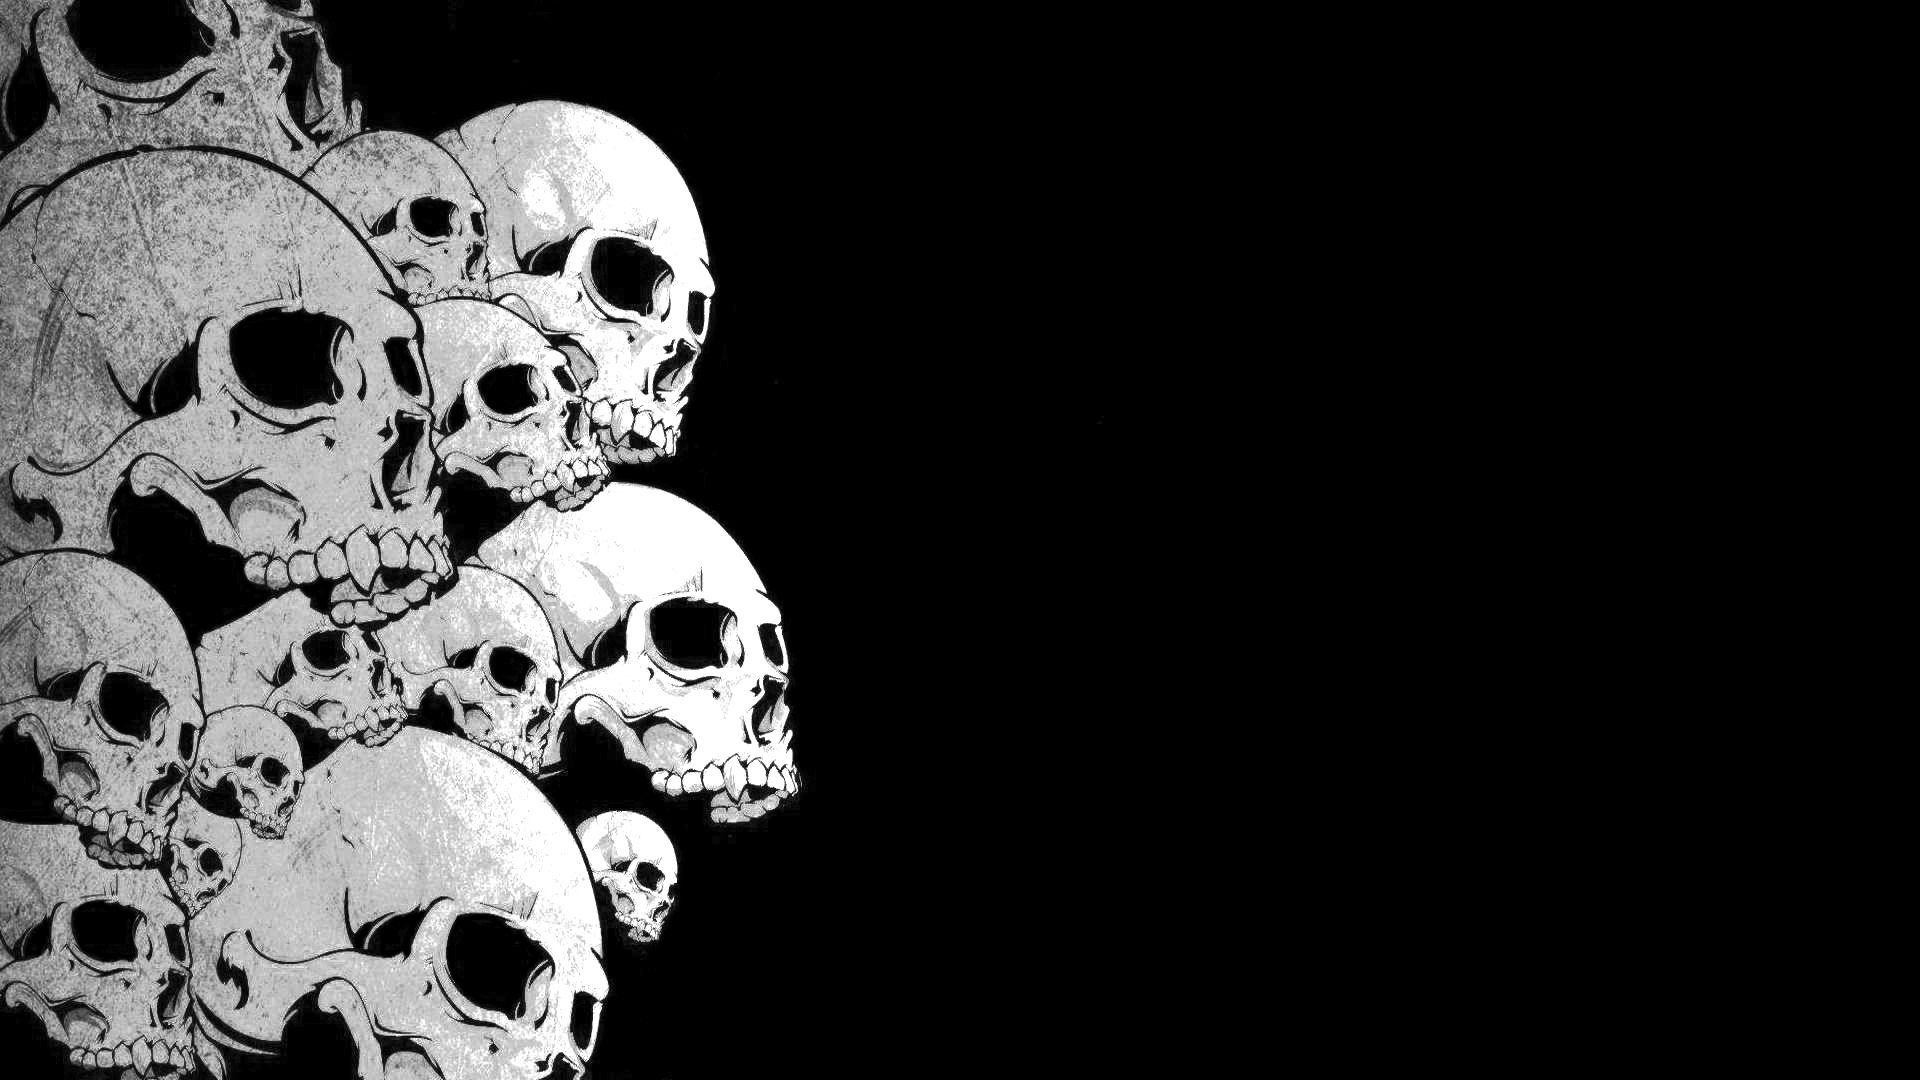 Skull Wallpaper Hd 67 Images